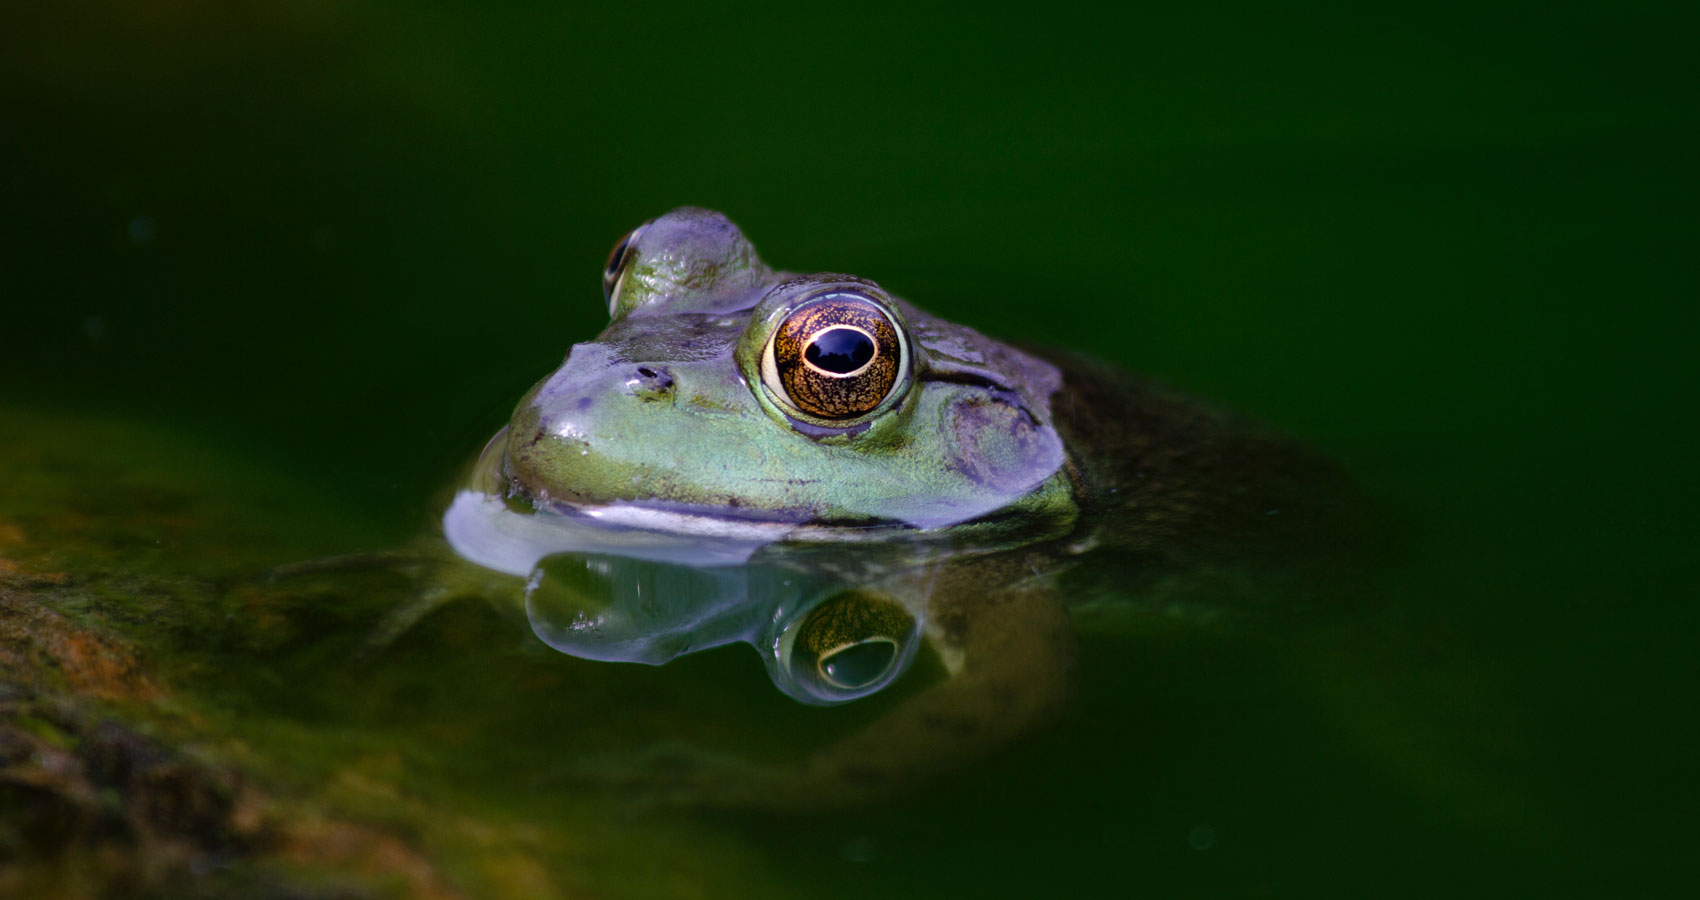 Leaping Frogs, a haiku poem by Alta H Mabin at Spillwords.com